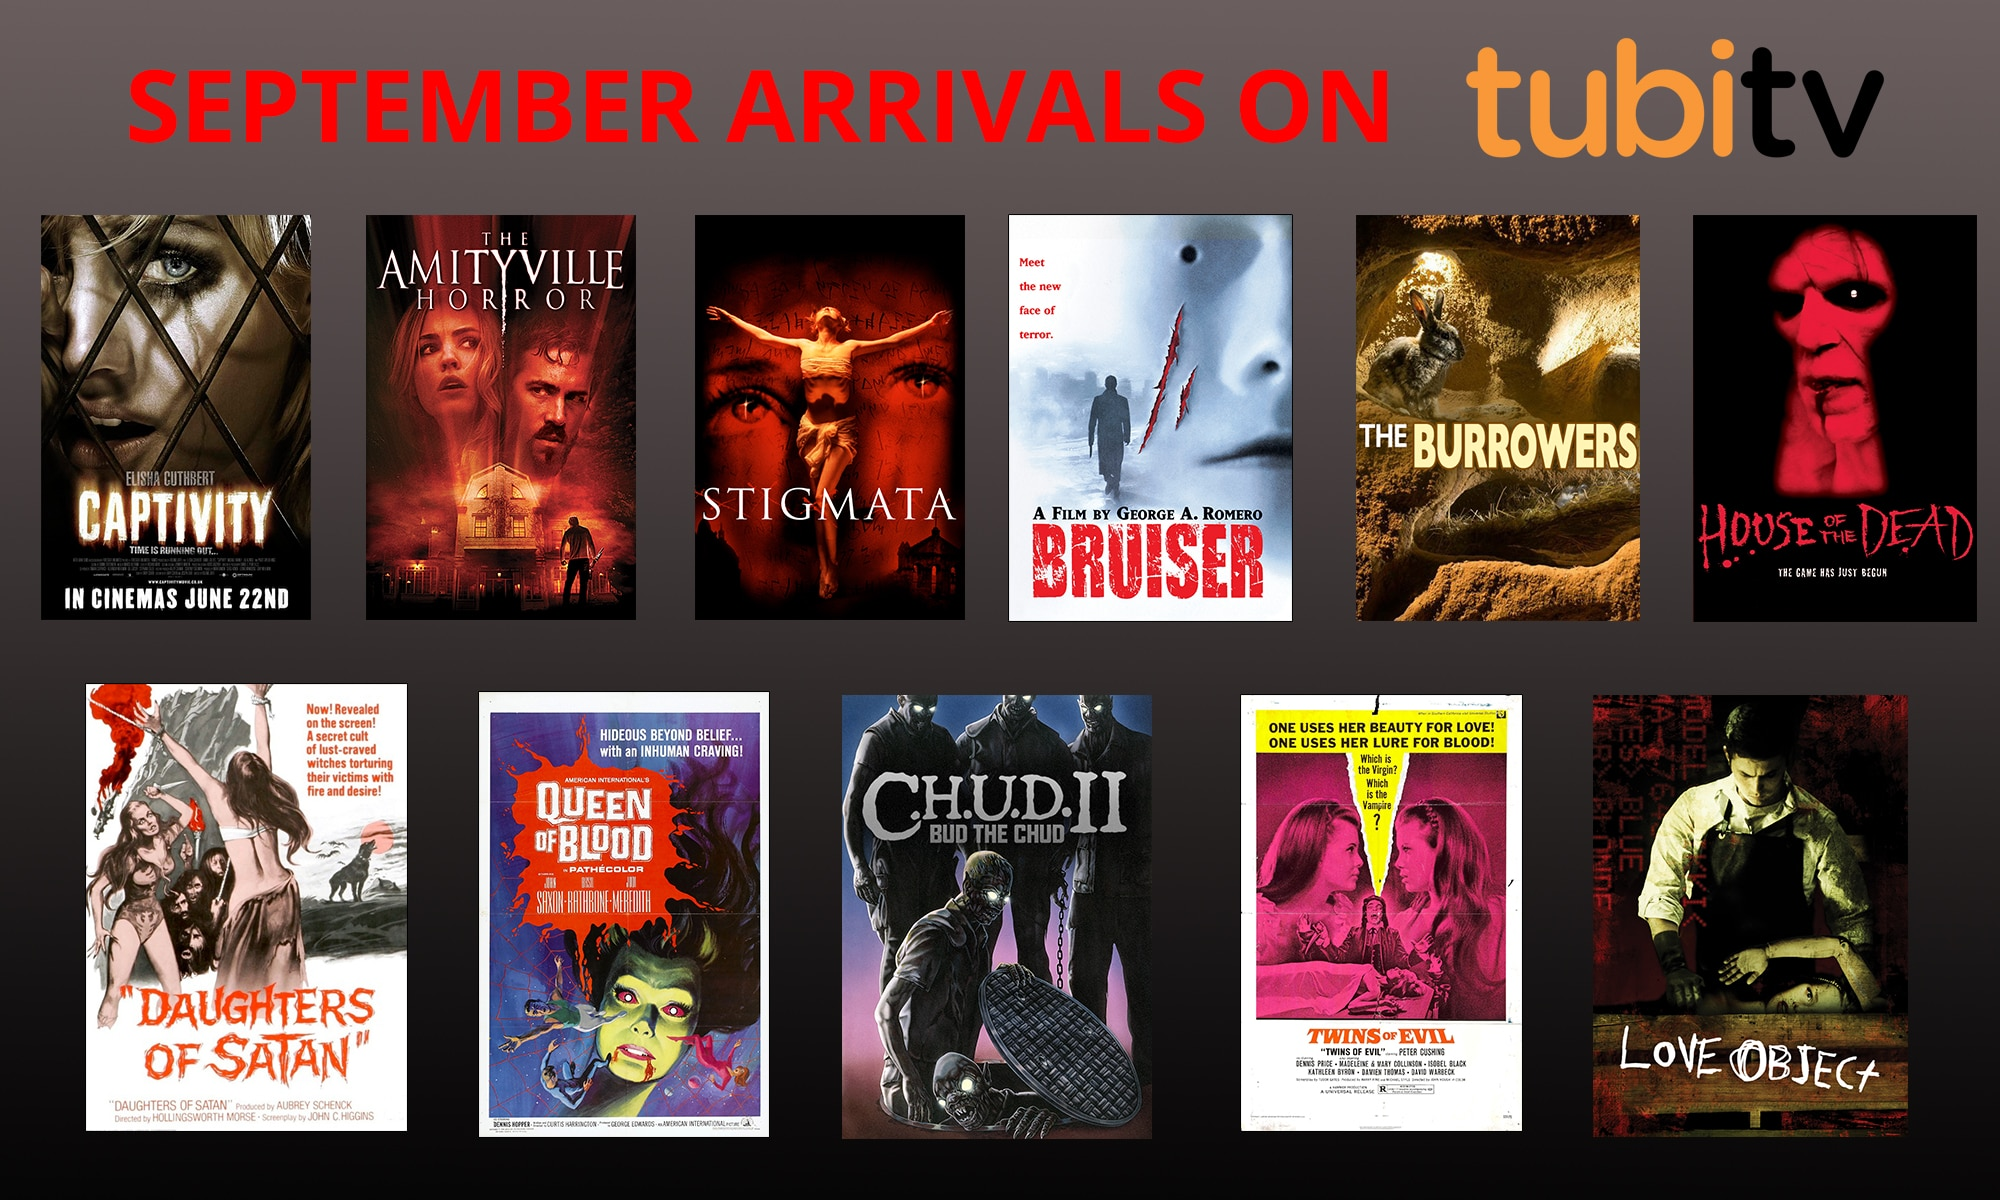 Horror Arrivals September - Tubi TV Terrors for September 2016